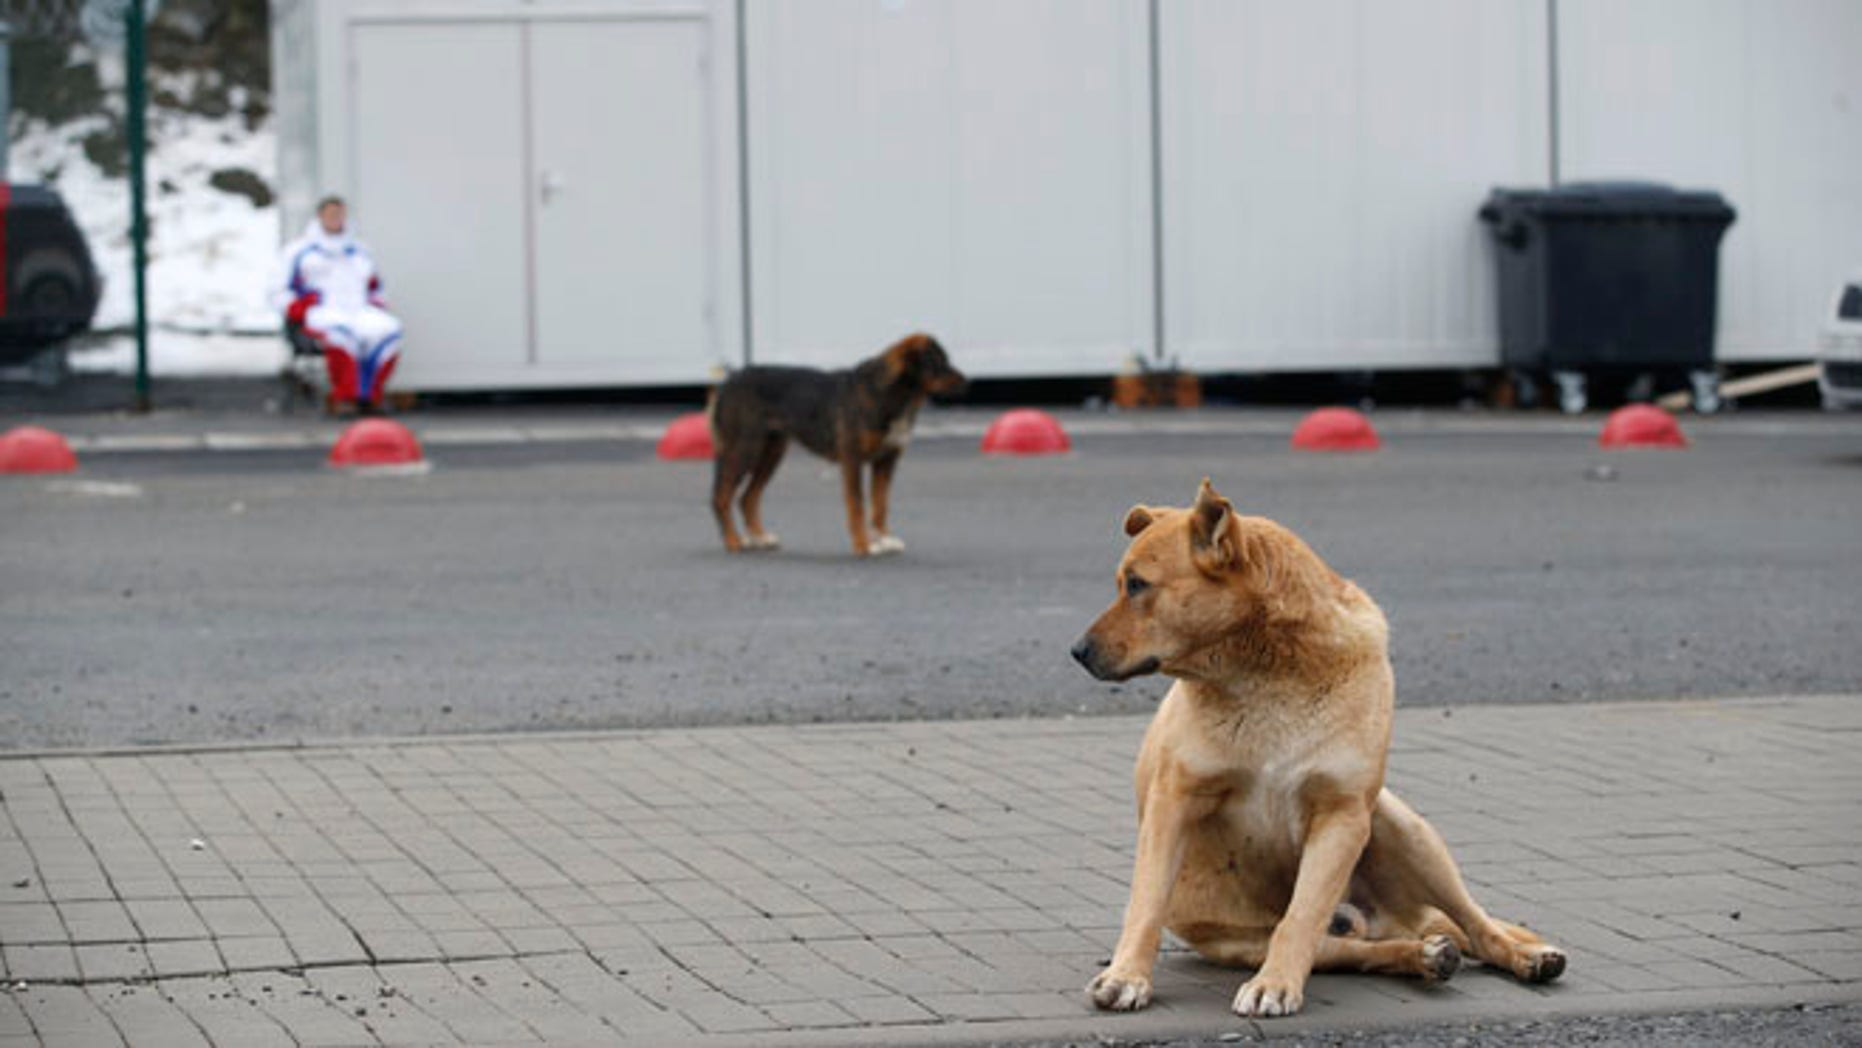 Feb. 3, 2014: Stray dogs sit outside the Rosa Khutor Extreme Park course, a venue for the snowboarding and freestyle competitions of the 2014 Winter Olympics, in Sochi, Russia.